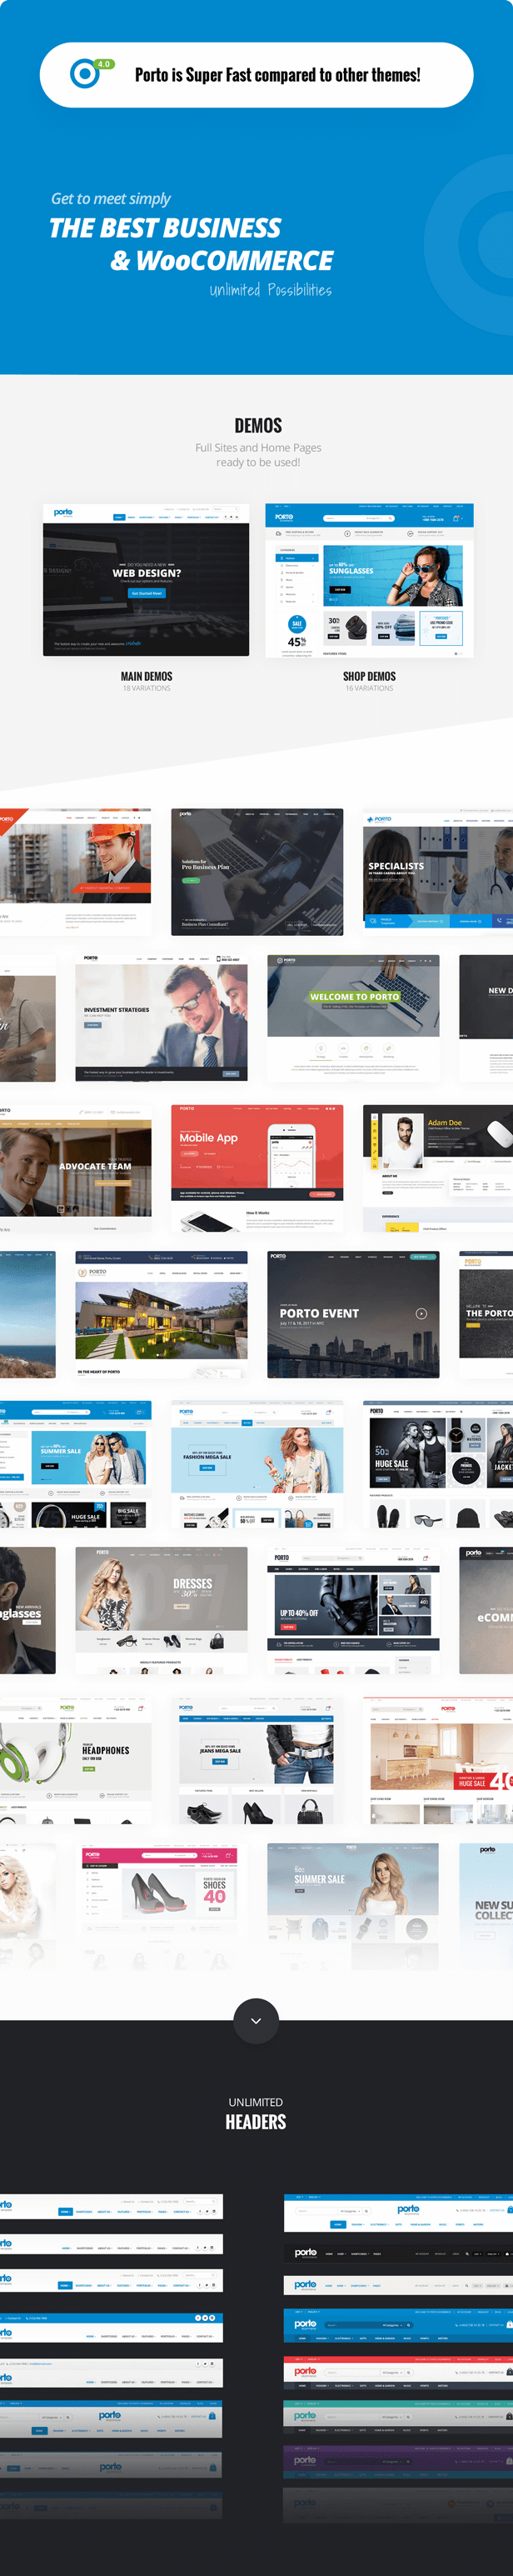 Porto | Responsive WordPress + eCommerce  - 1 - Porto | Multi-Purpose Wordpress & Ultimate WooCommerce Theme